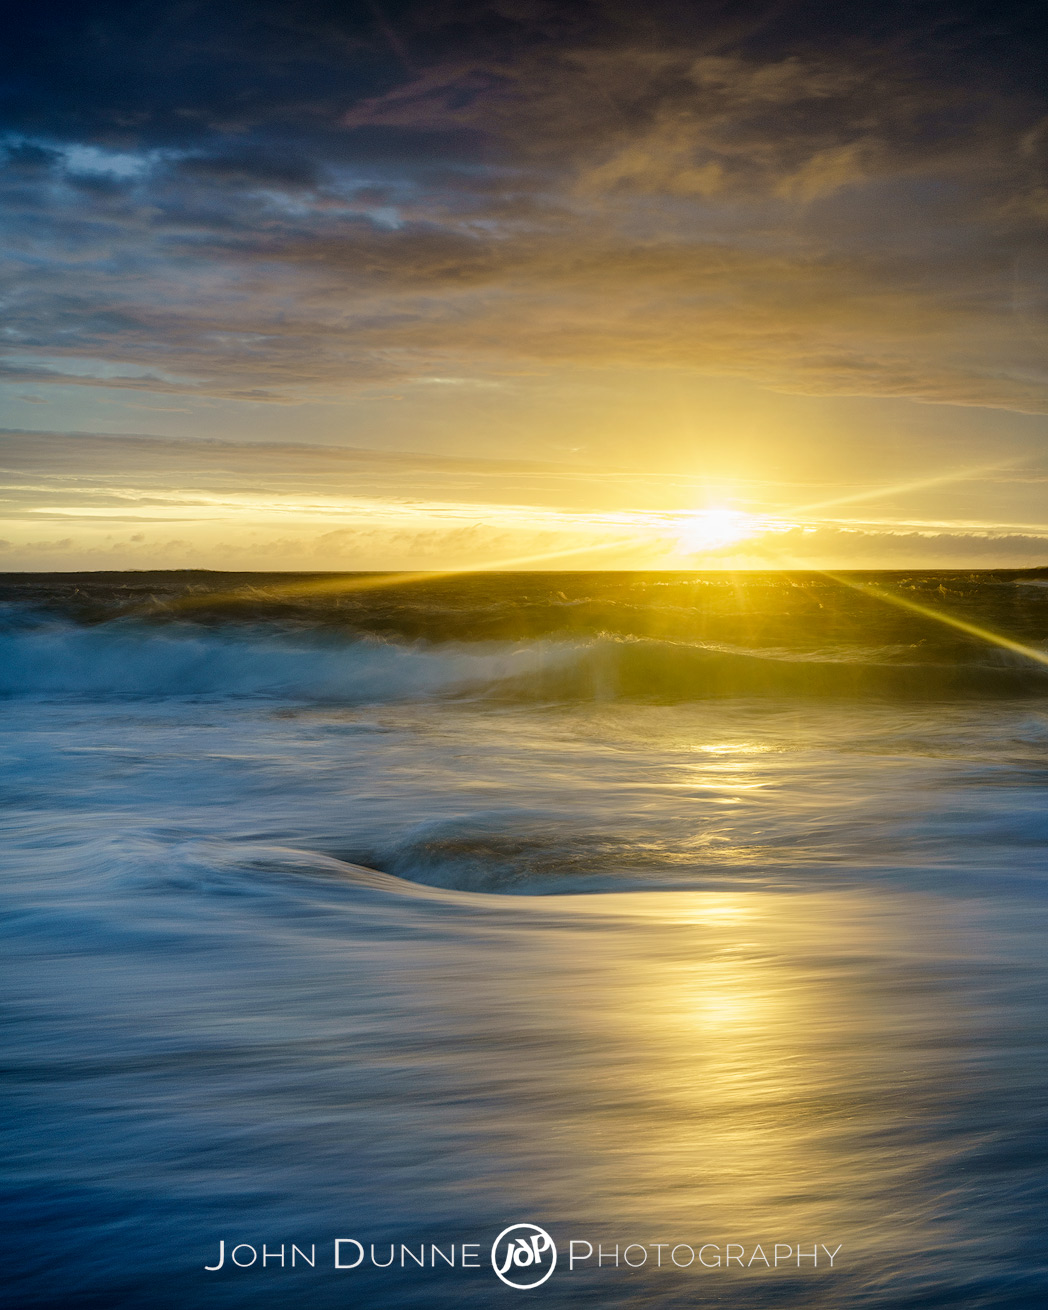 Sunset at Boyeeghter Bay #1 by John Dunne Photography.